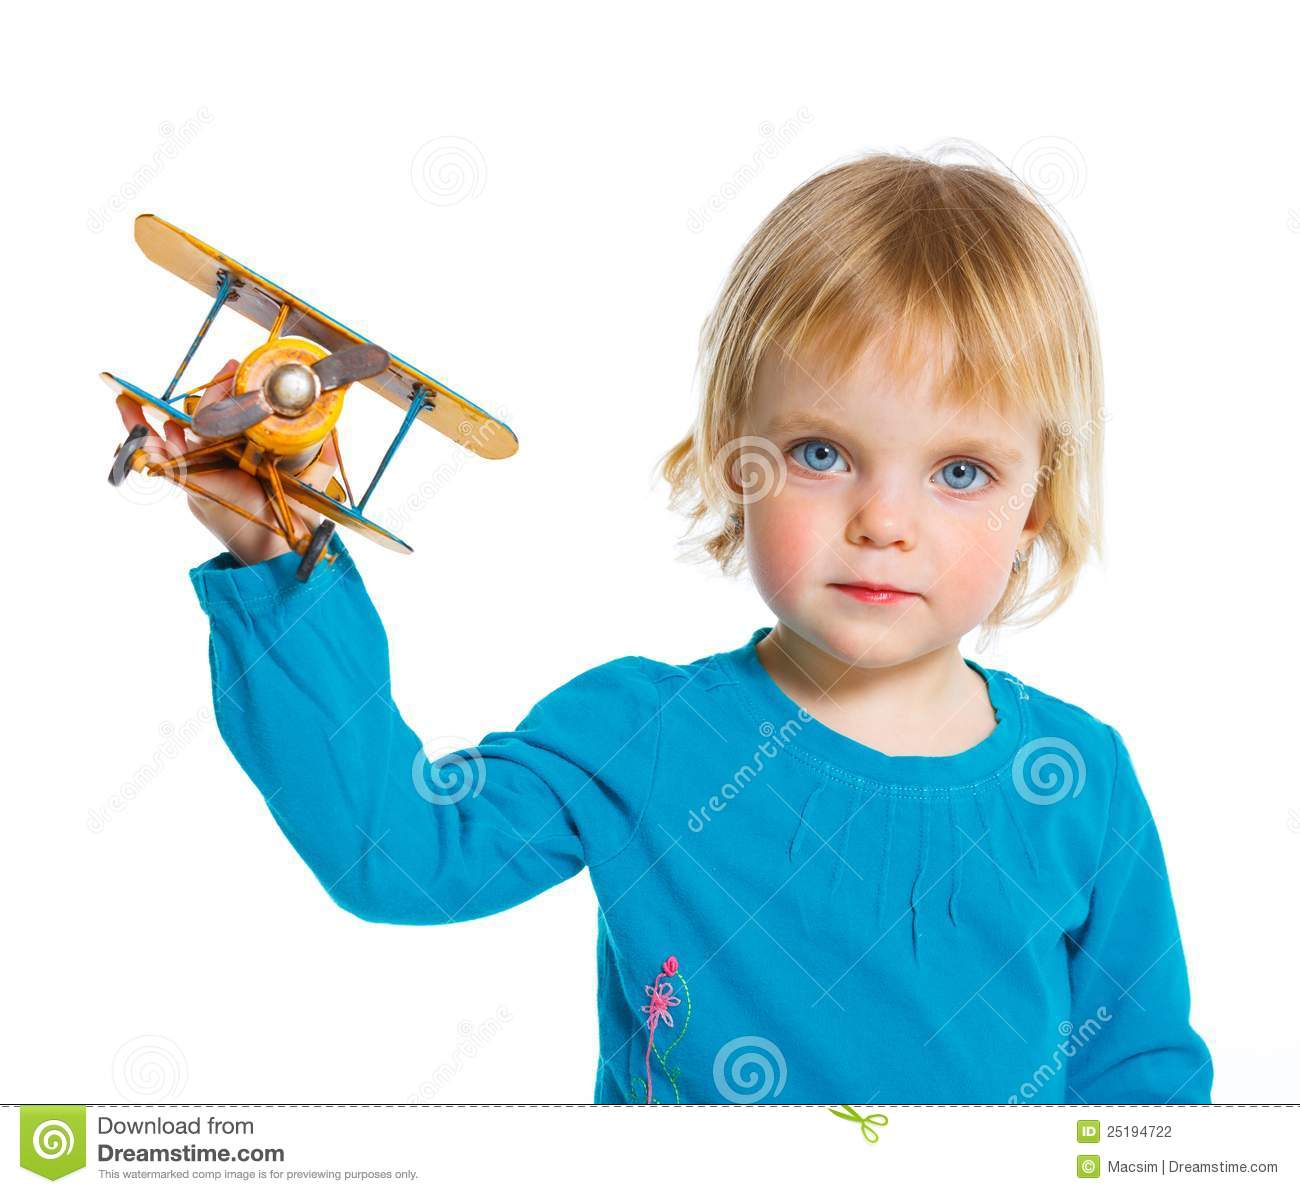 Adorable Little Girl Playing With Beach Toys During: Cute Little Girl Playing With A Toy Airplane Stock Photo